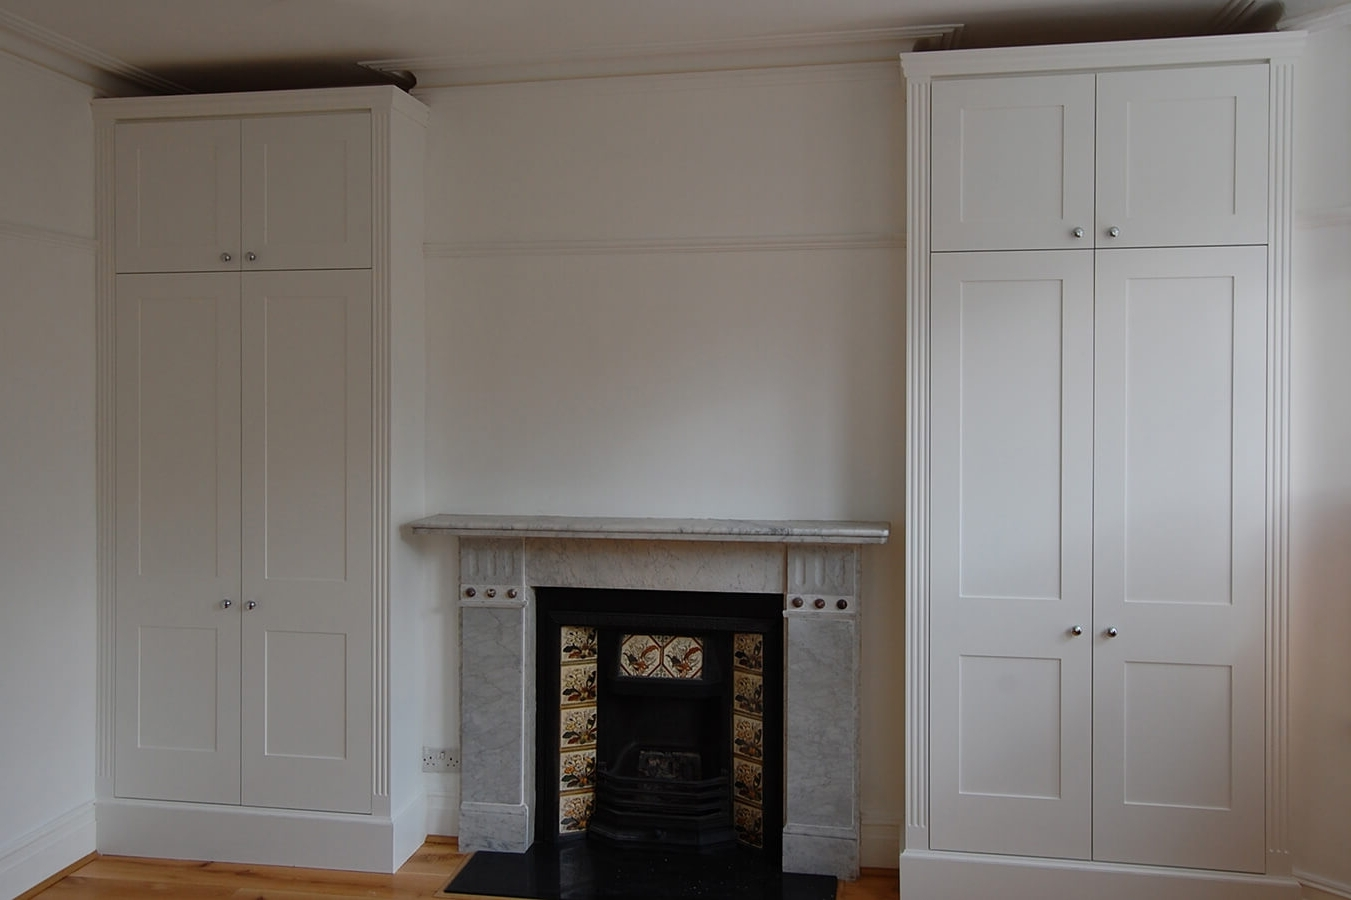 London Built In Wardrobes Alcoves – Google Search (View 13 of 15)